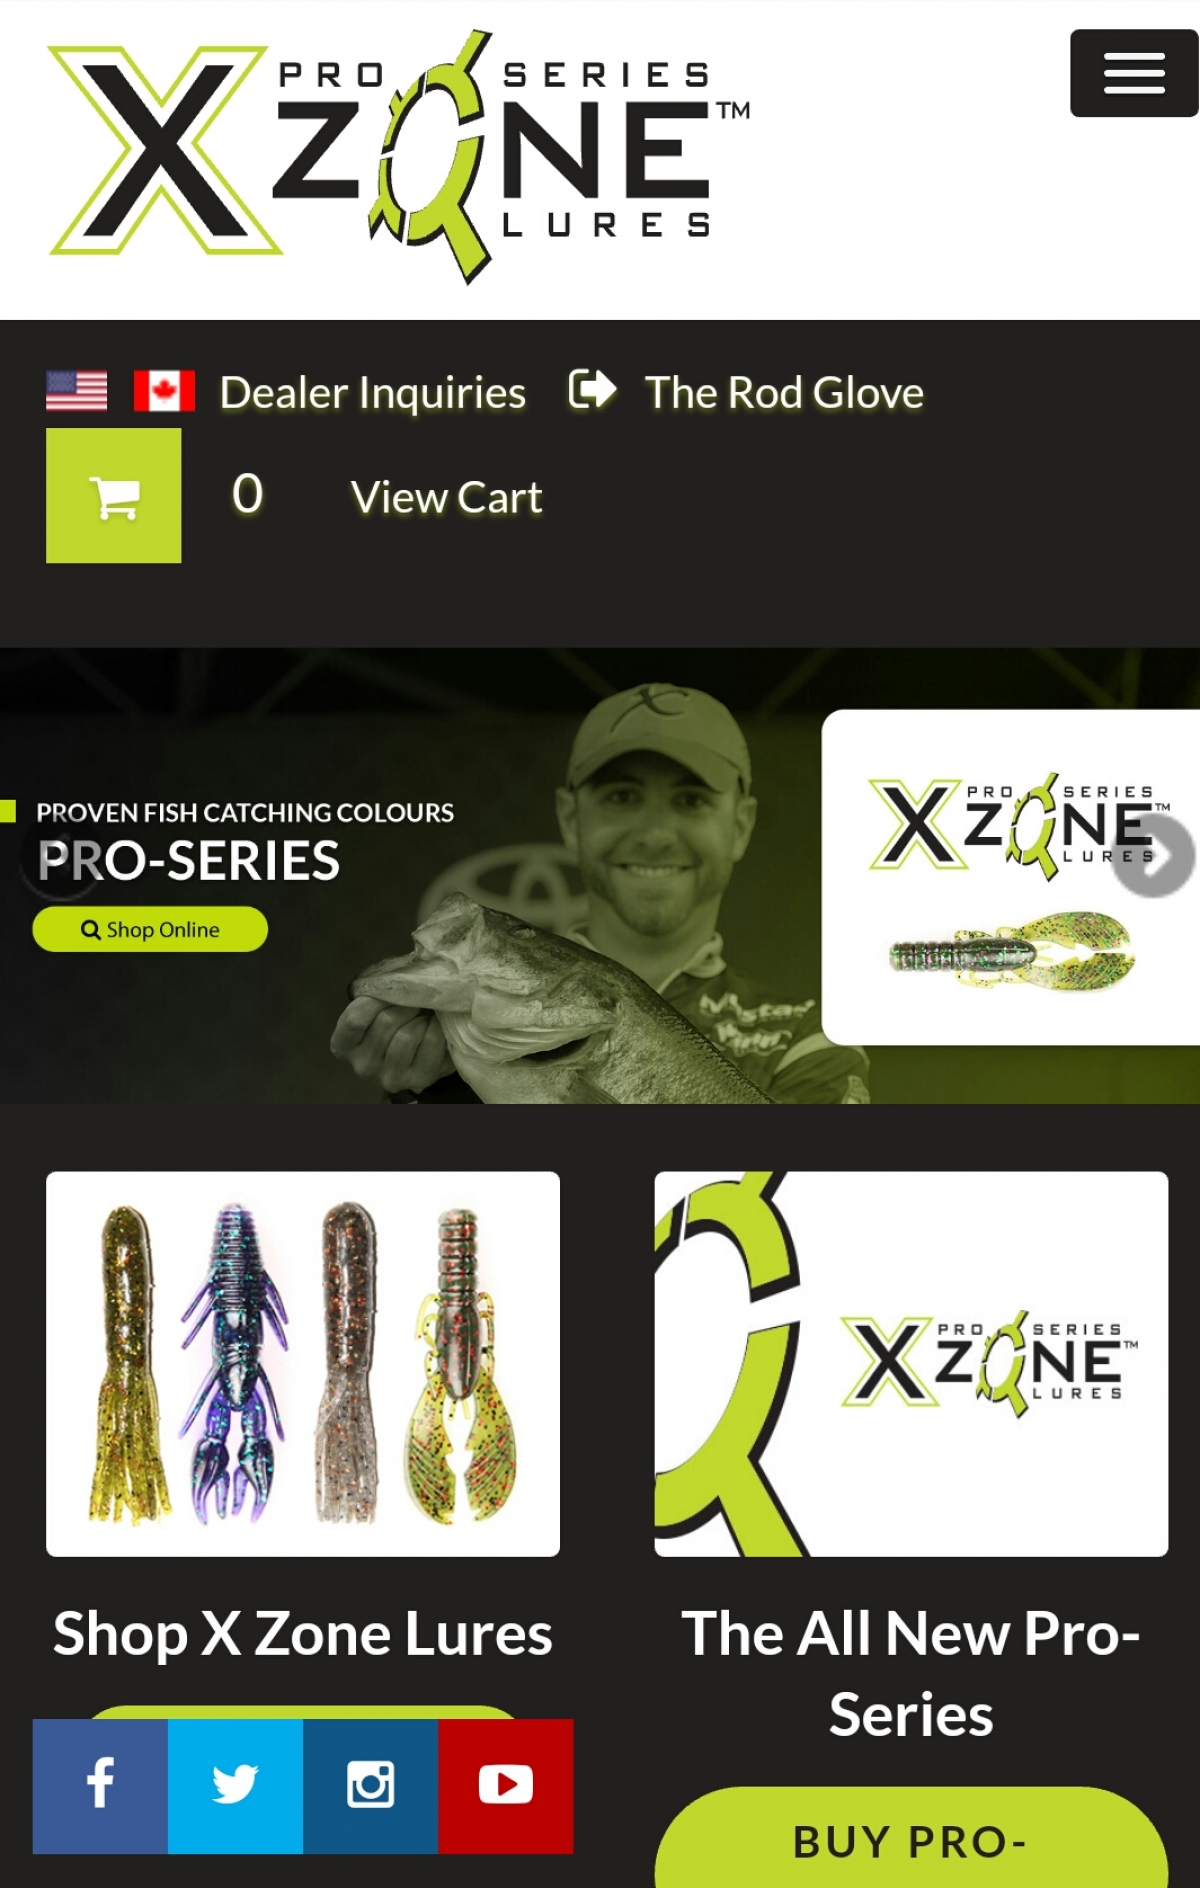 NEW X Zone Lures website is up and features 3 NEW X Zone Lure product lines